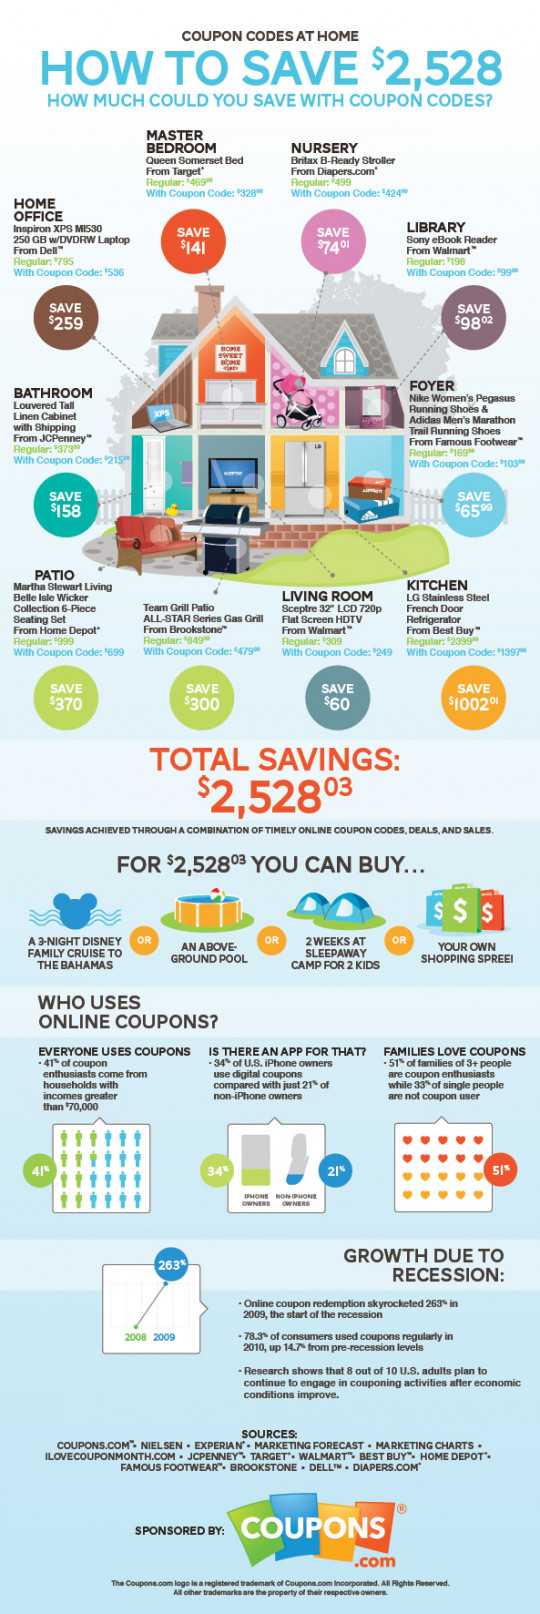 How to Save $2,528 with Coupons